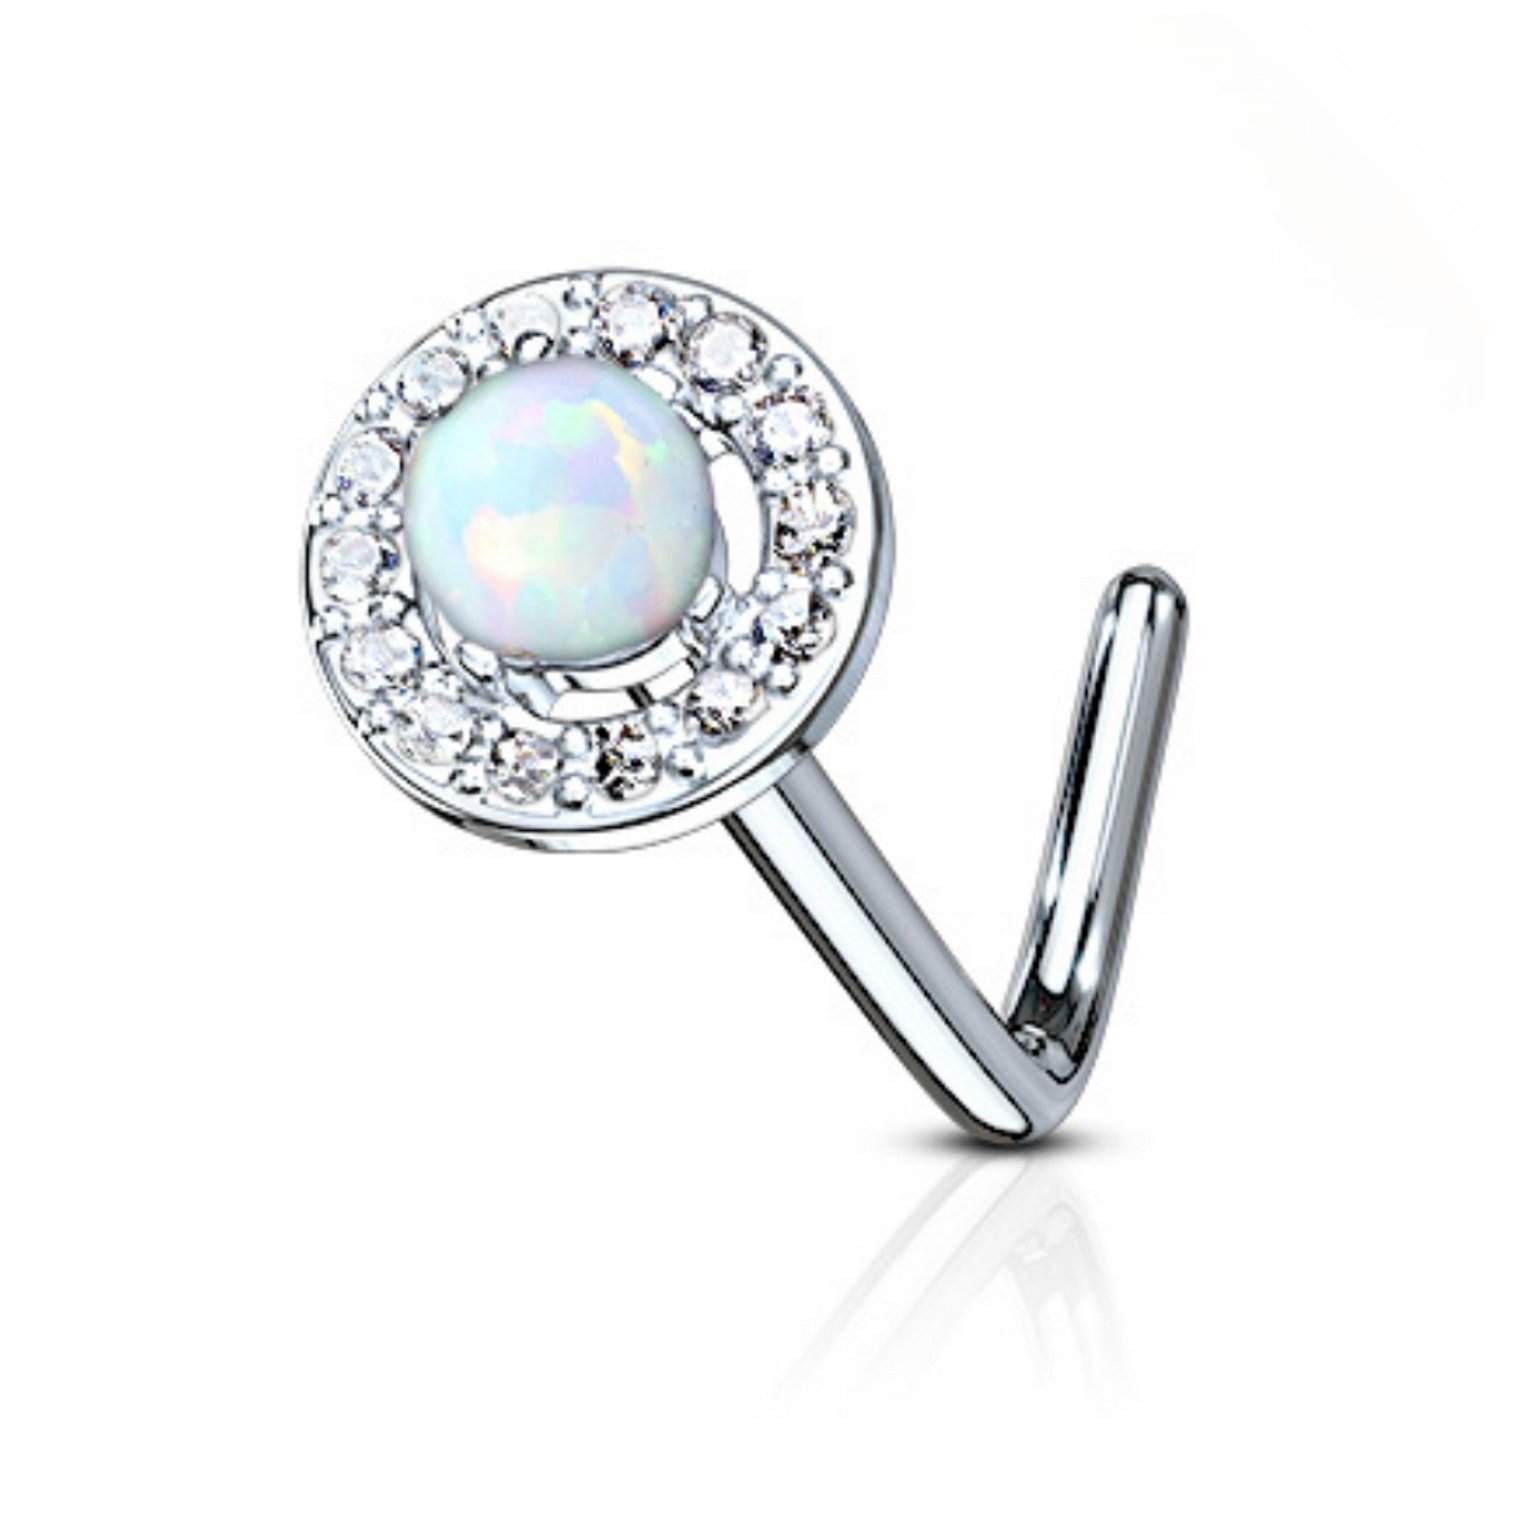 Synthetic Opal Dome Top L-Shaped Surgical Steel Nose Ring Stud 20 Gauge (White)